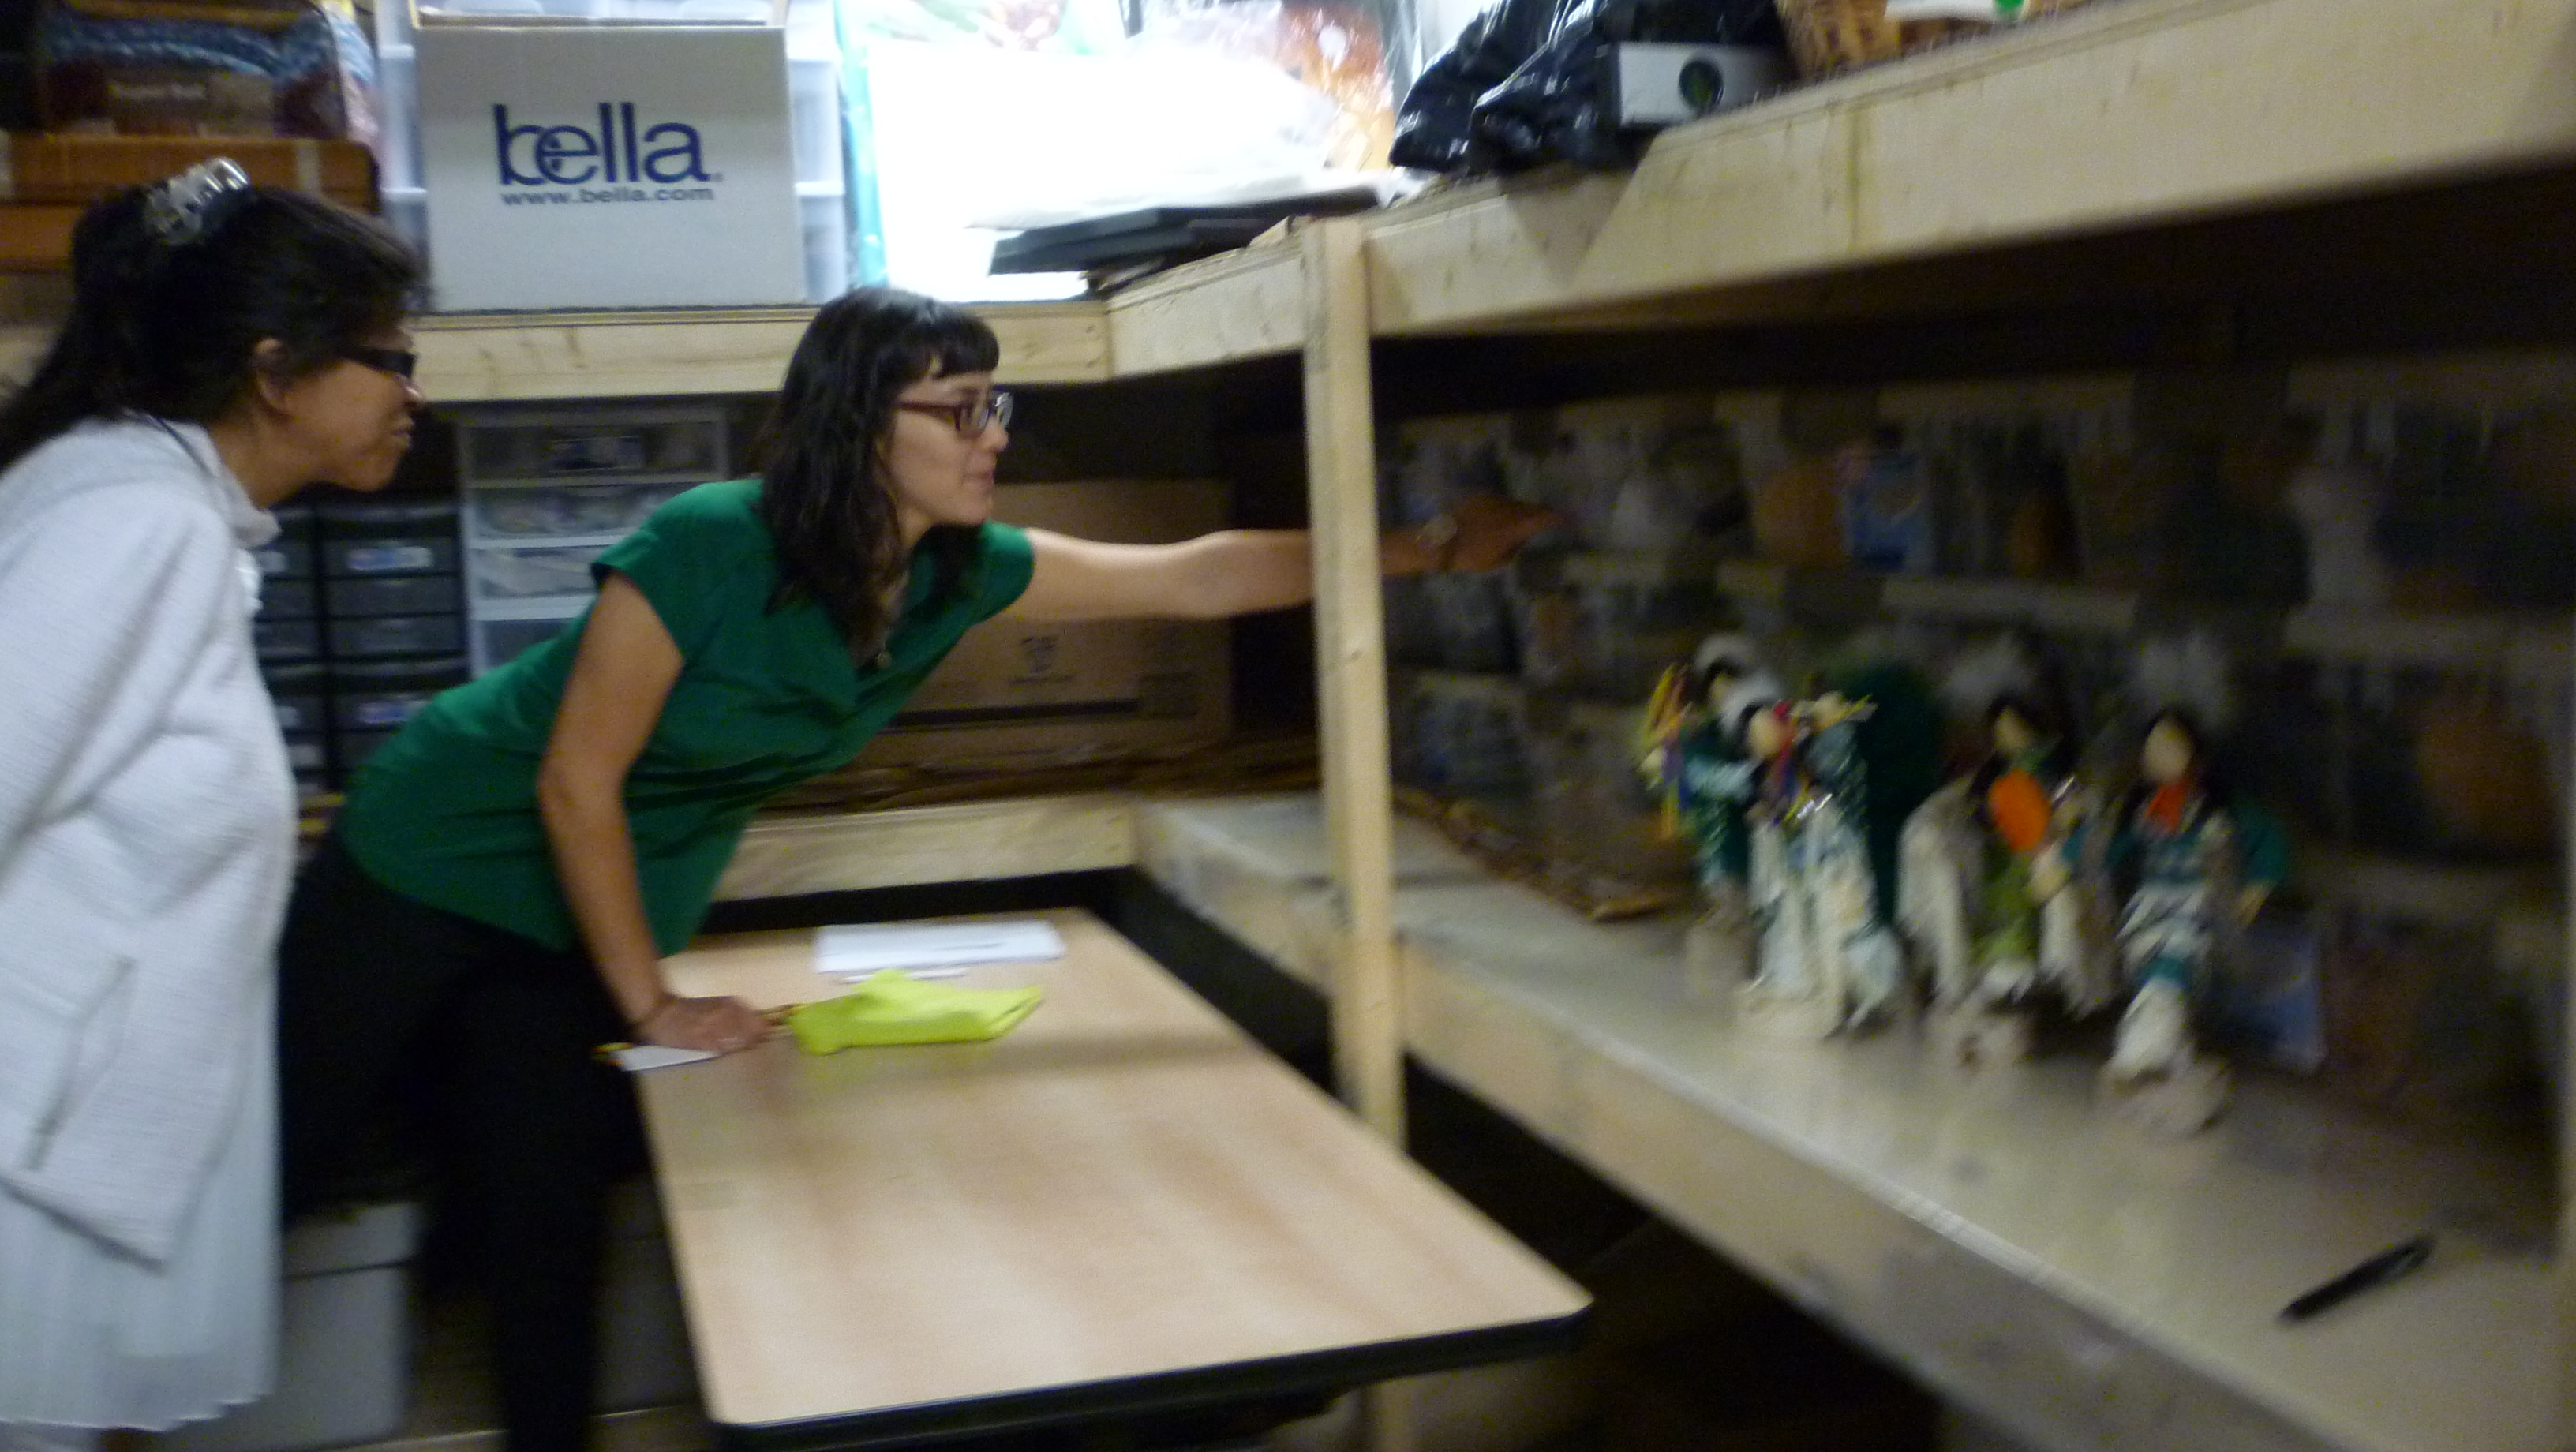 Two women in Kitigan storage are exploring the kind of art stored there